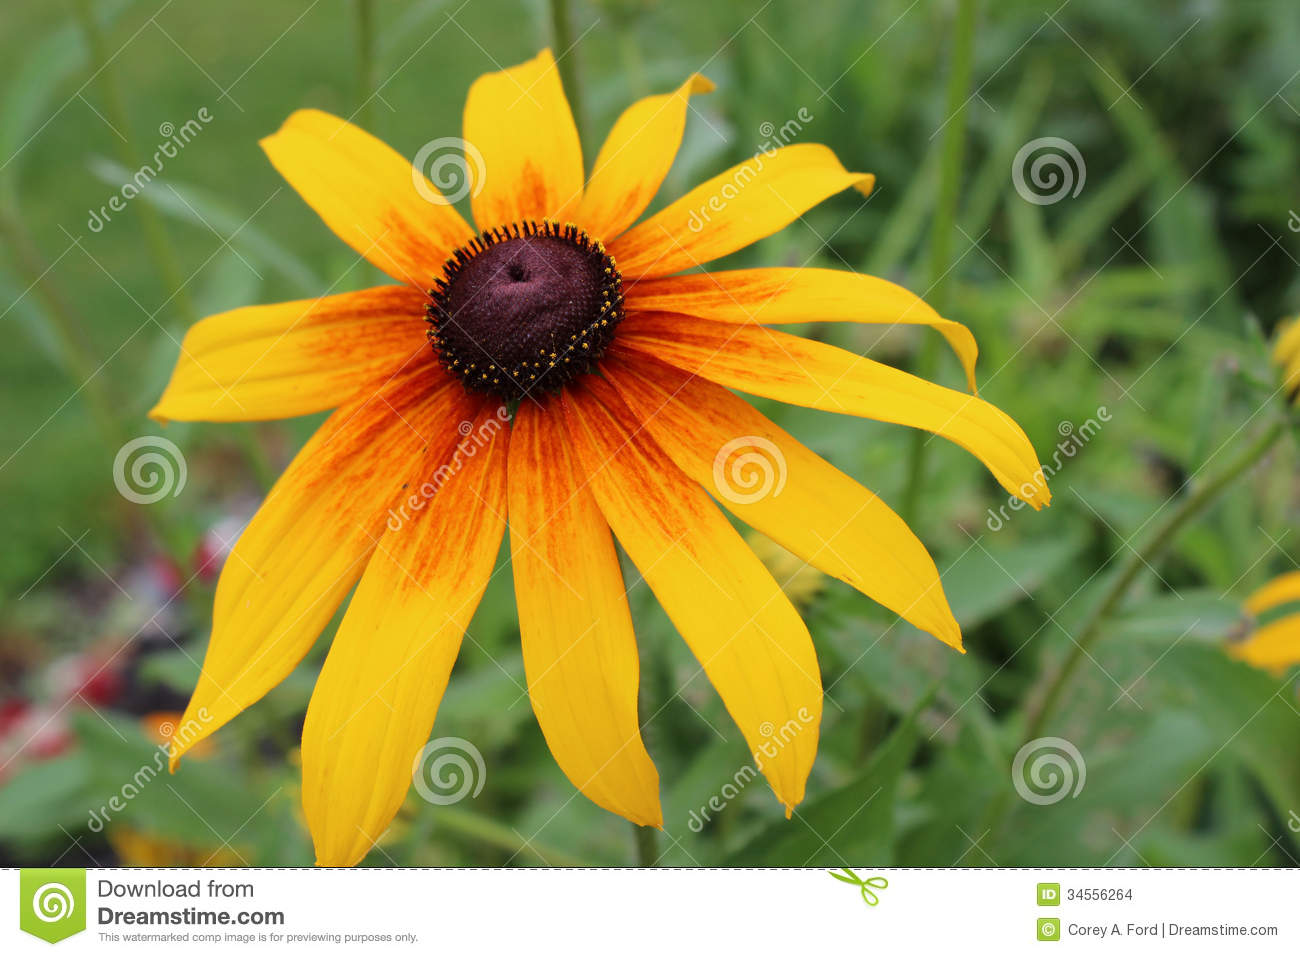 Yellow Daisy Flower Stock Photo Image Of Nature Image 34556264